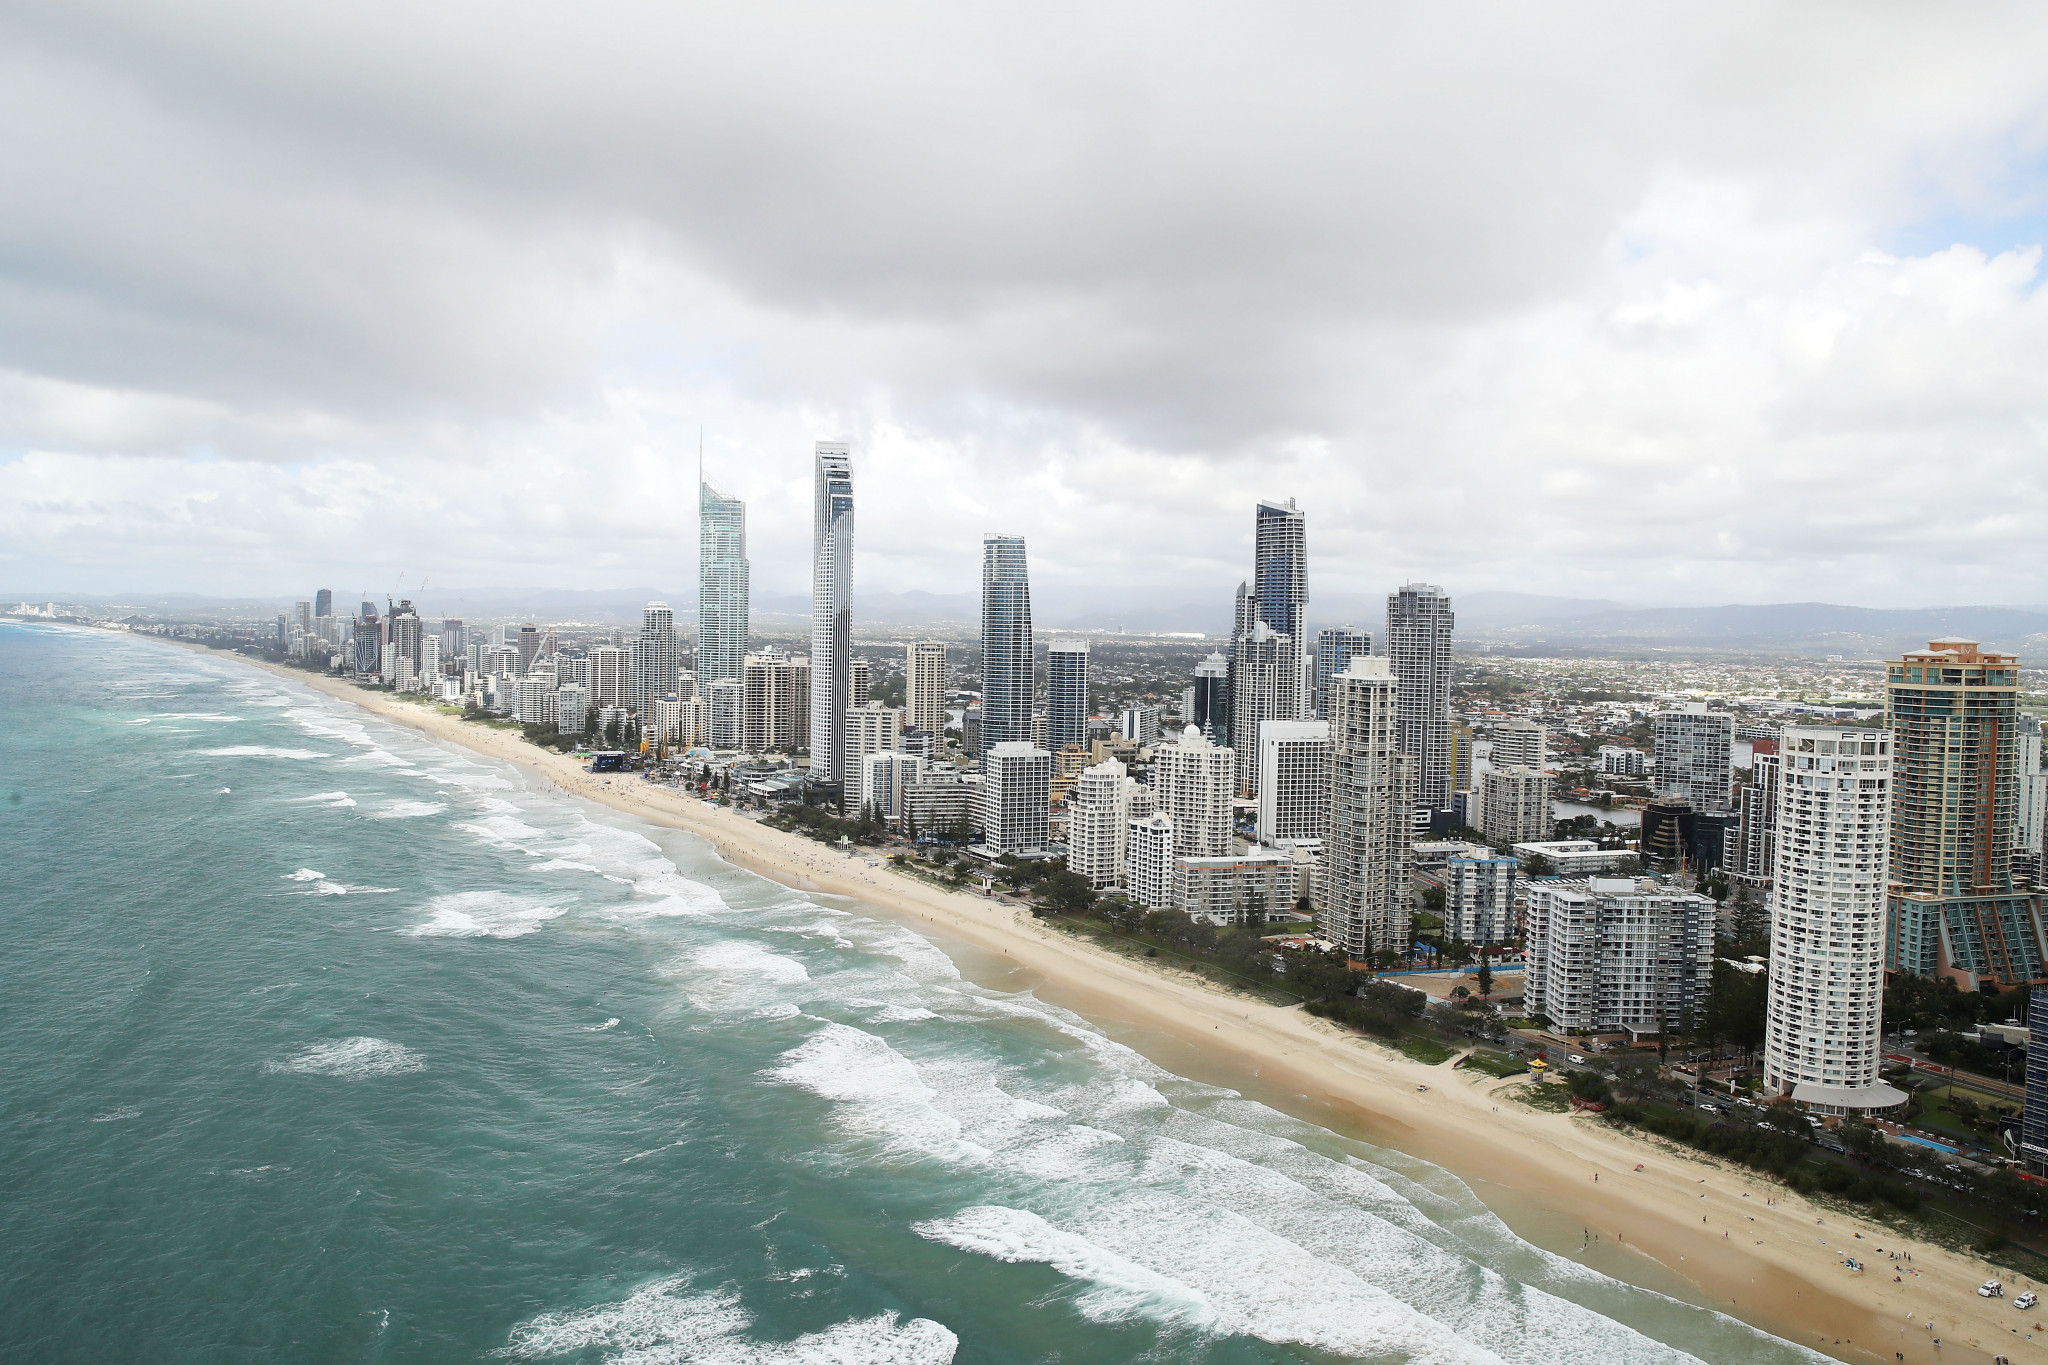 A successful Queensland bid for the 2032 Olympic Games could see competition take place at Gold Coast ©Getty Images